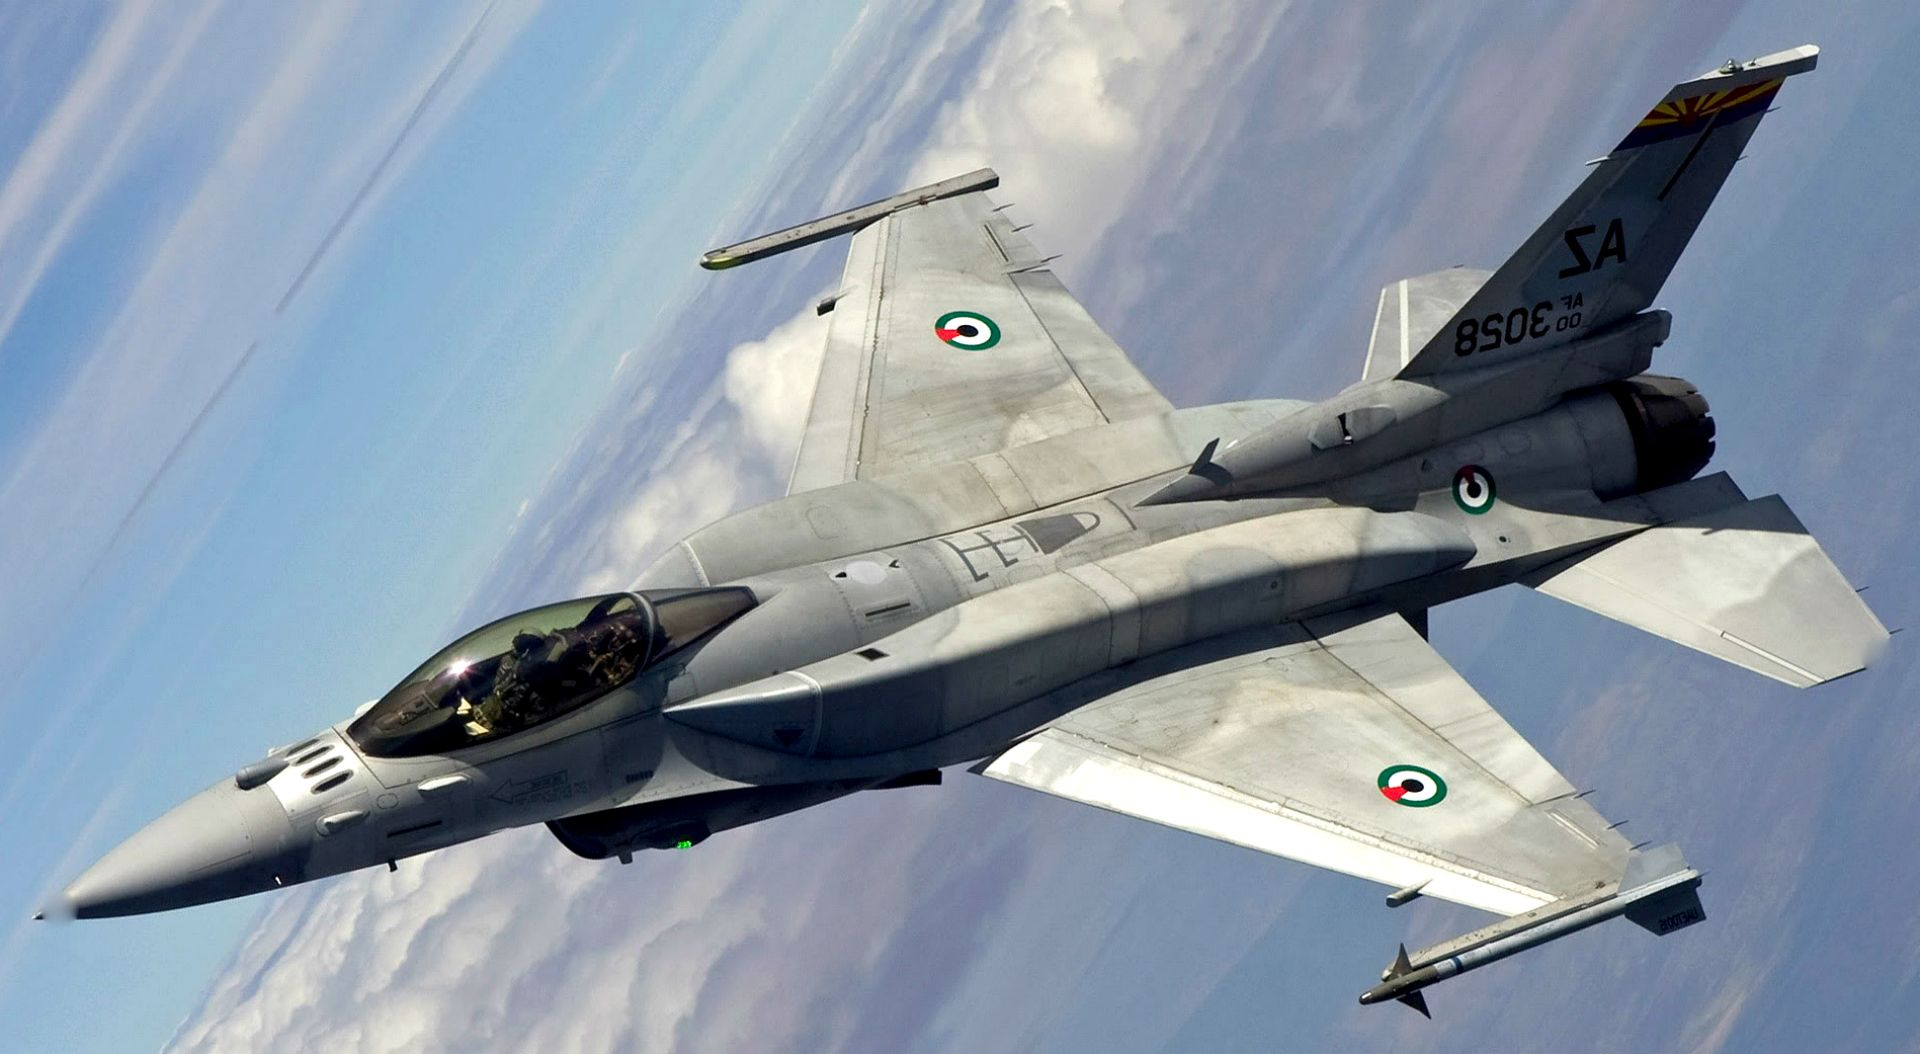 f16 jet plane hd wallpaper - hd wallpapers 4 us | hd wallpapers 4 us